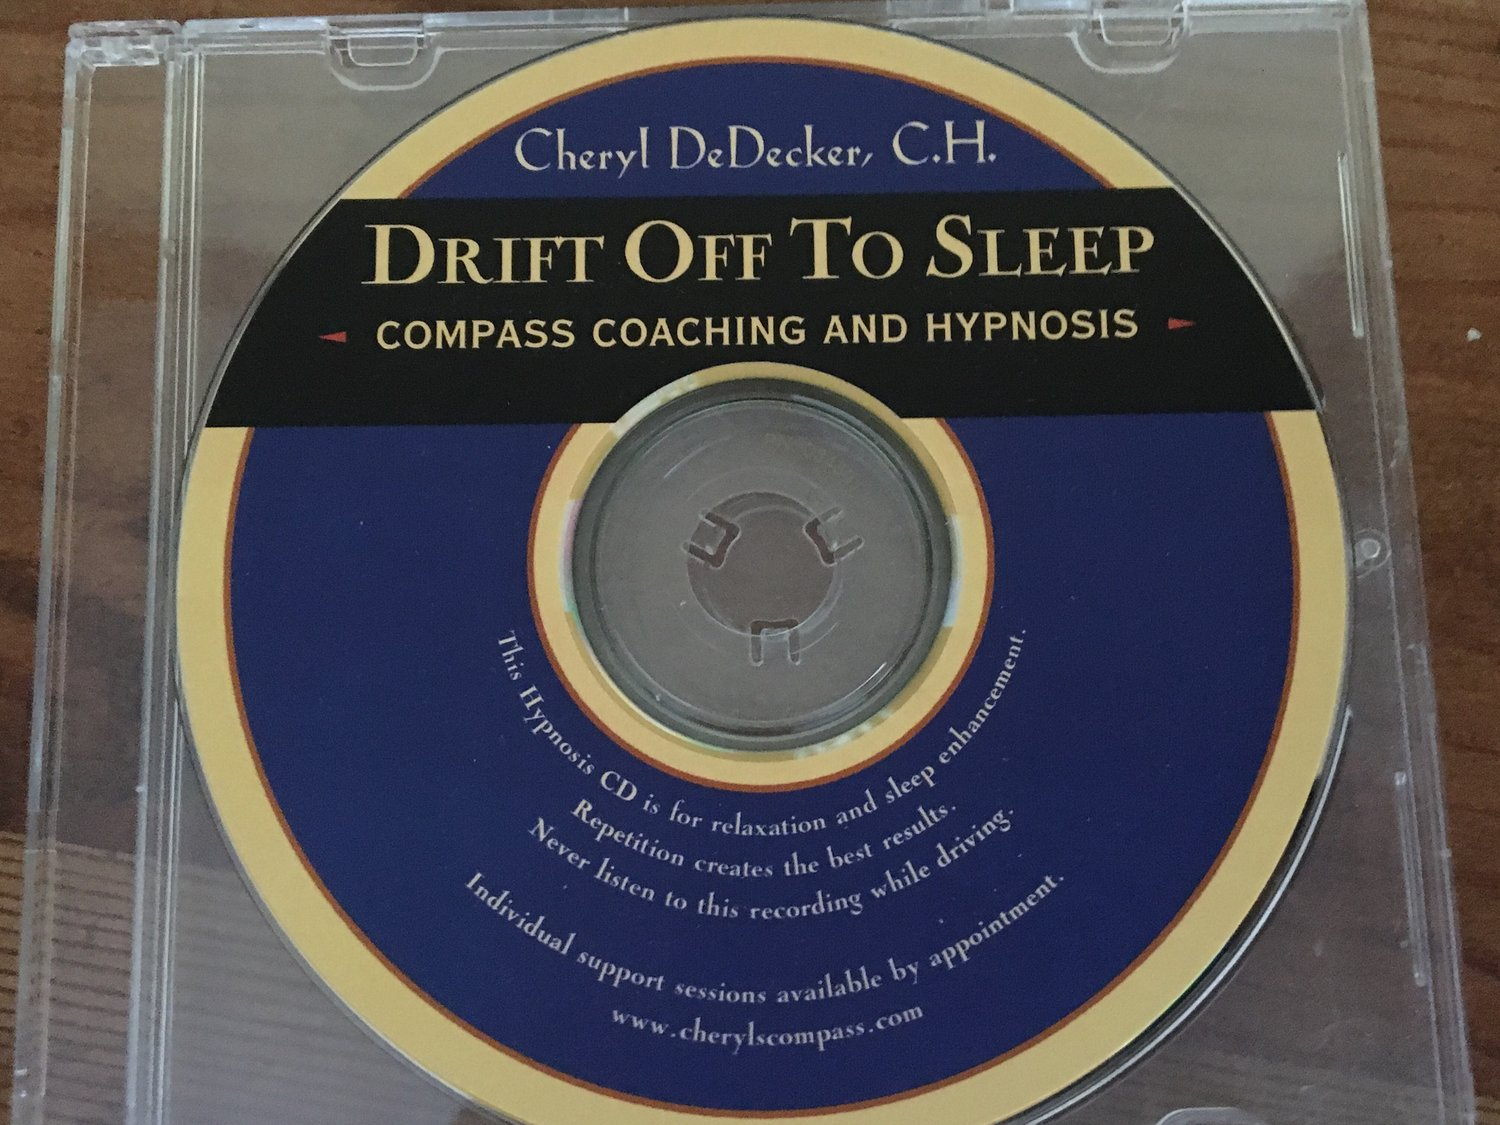 Drift Off To Sleep — Compass Coaching and Hypnosis